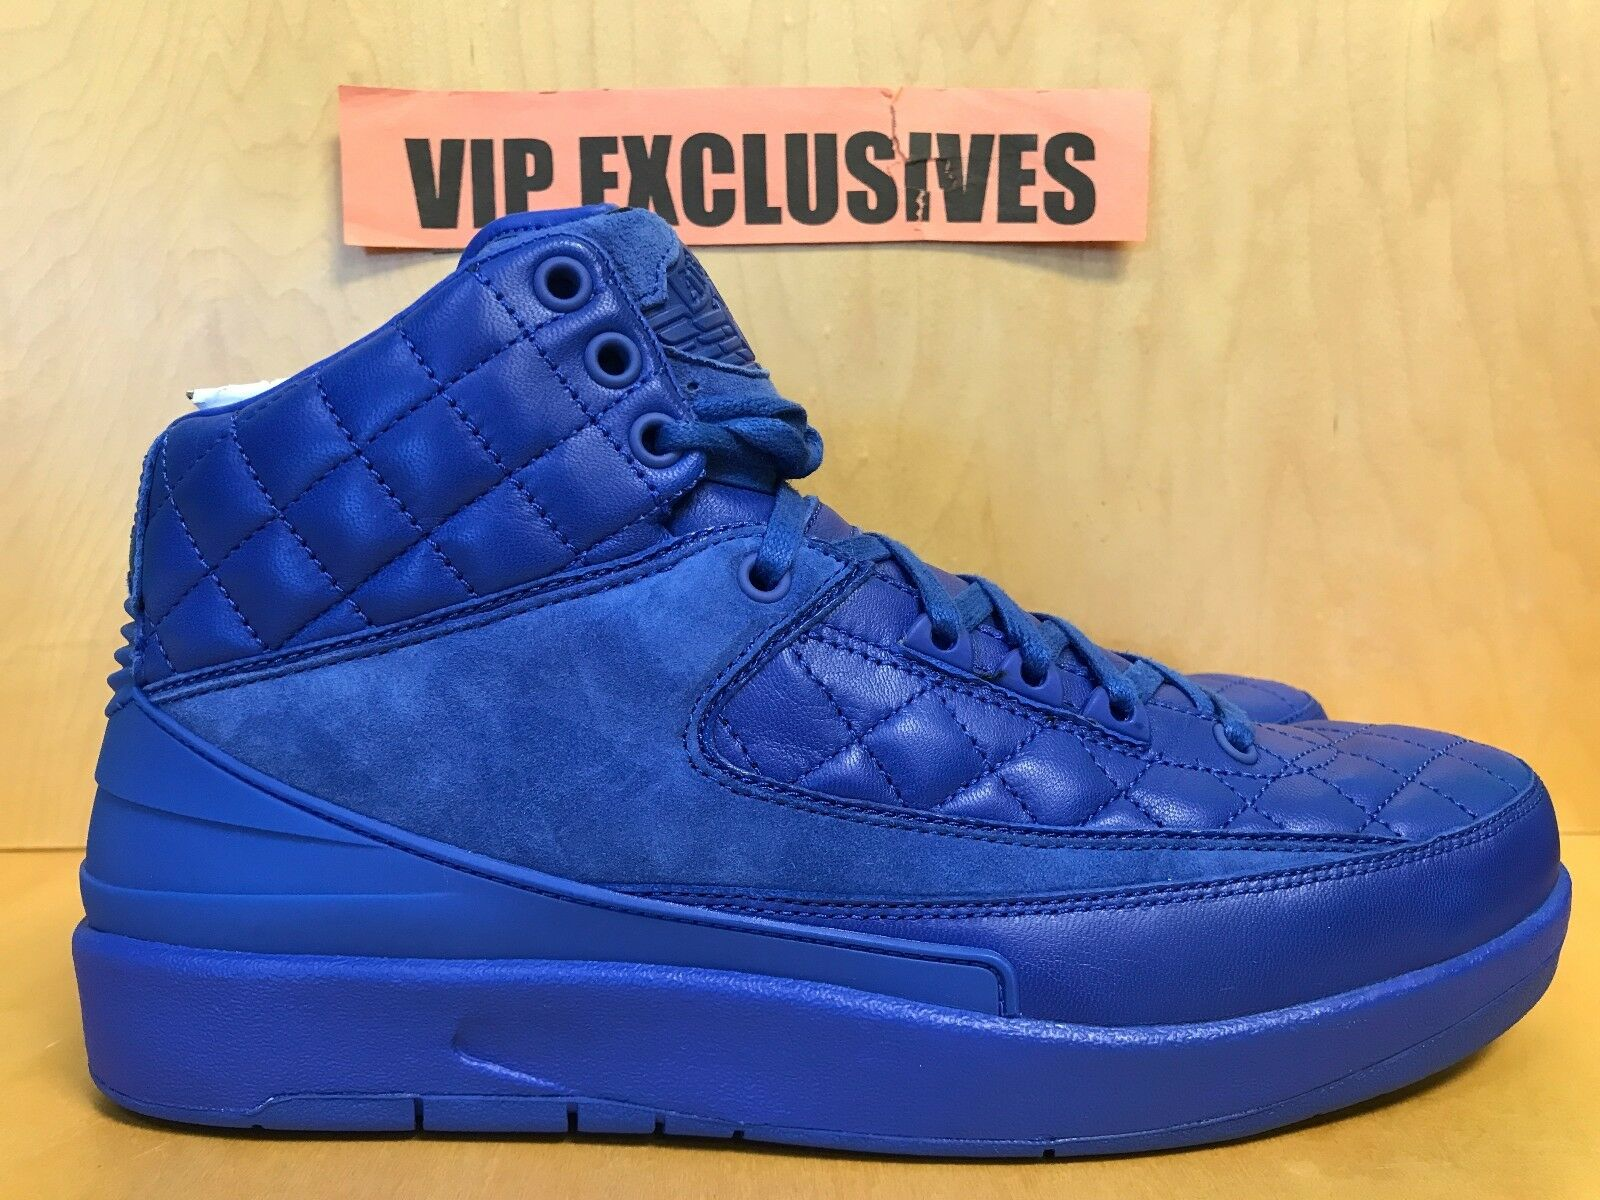 NIKE AIR JORDAN 2 RETRO 717170405 DON CAzul Brillante II 717170405 RETRO  color más raro bdb6c4